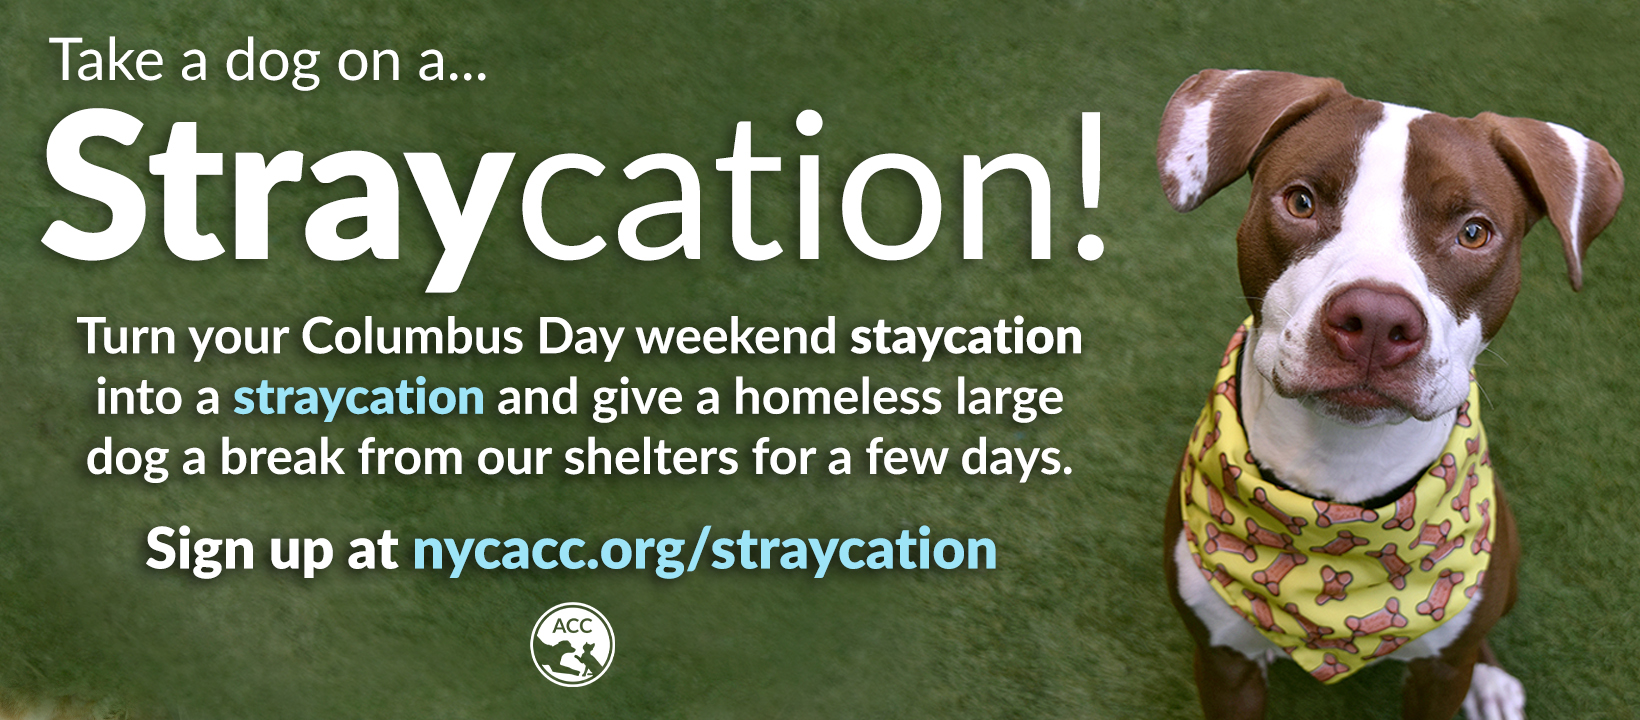 straycation columbus day website banner.jpg